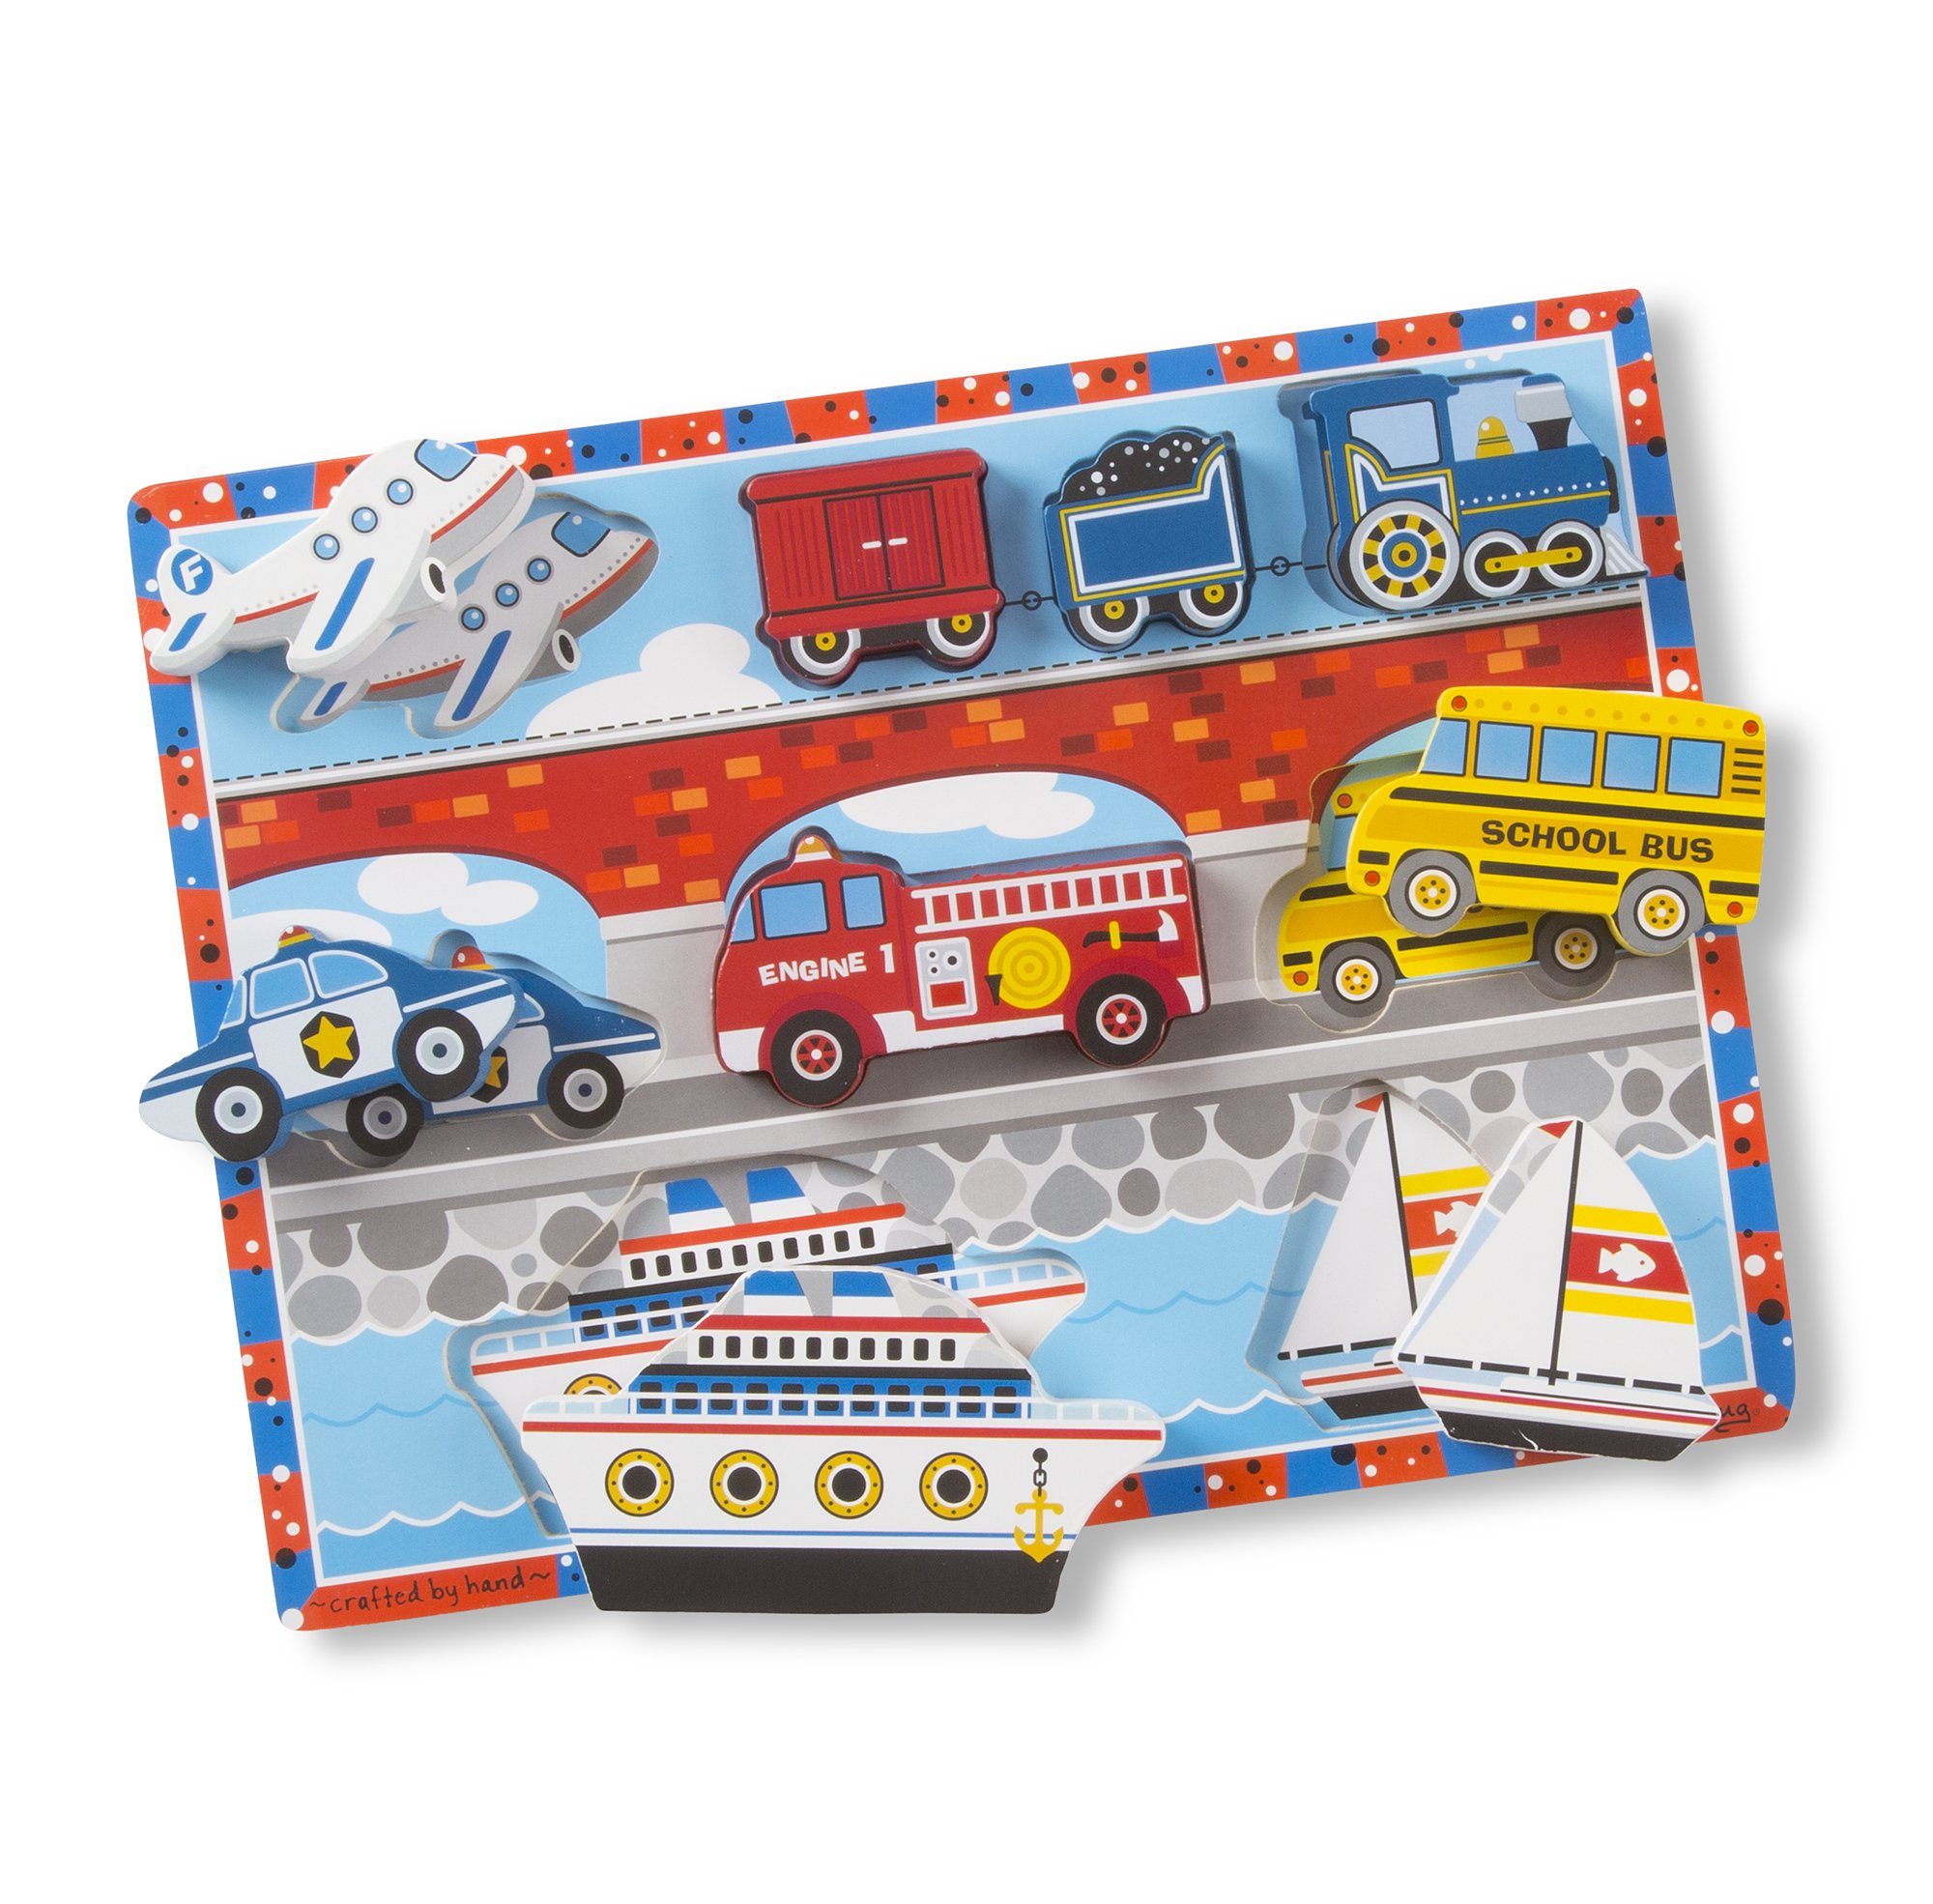 Melissa & Doug Vehicles Wooden Chunky Puzzle - Plane, Train, Cars, and Boats (9 pcs) - image 4 of 5